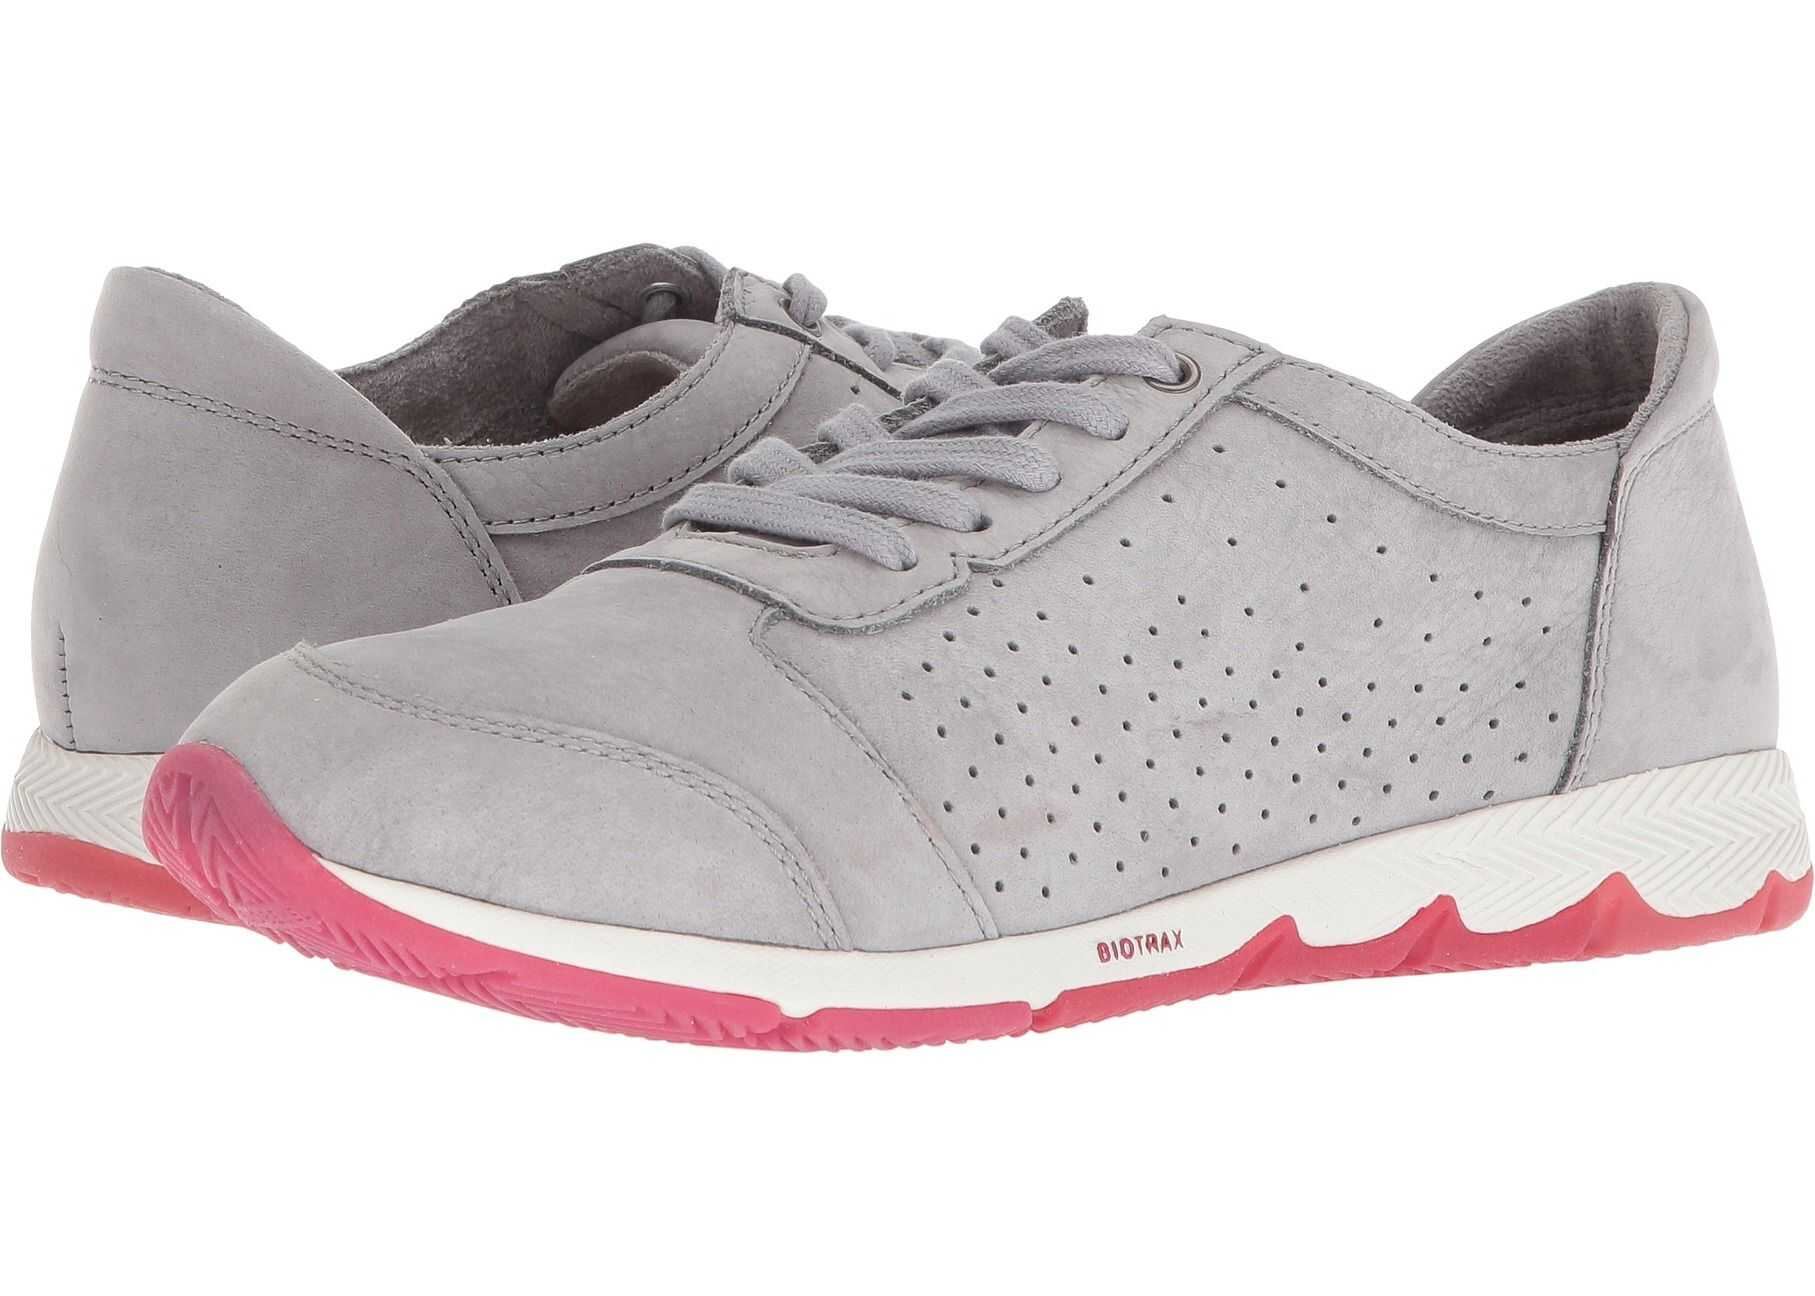 Hush Puppies Cesky Perf Oxford Frost Grey Nubuck